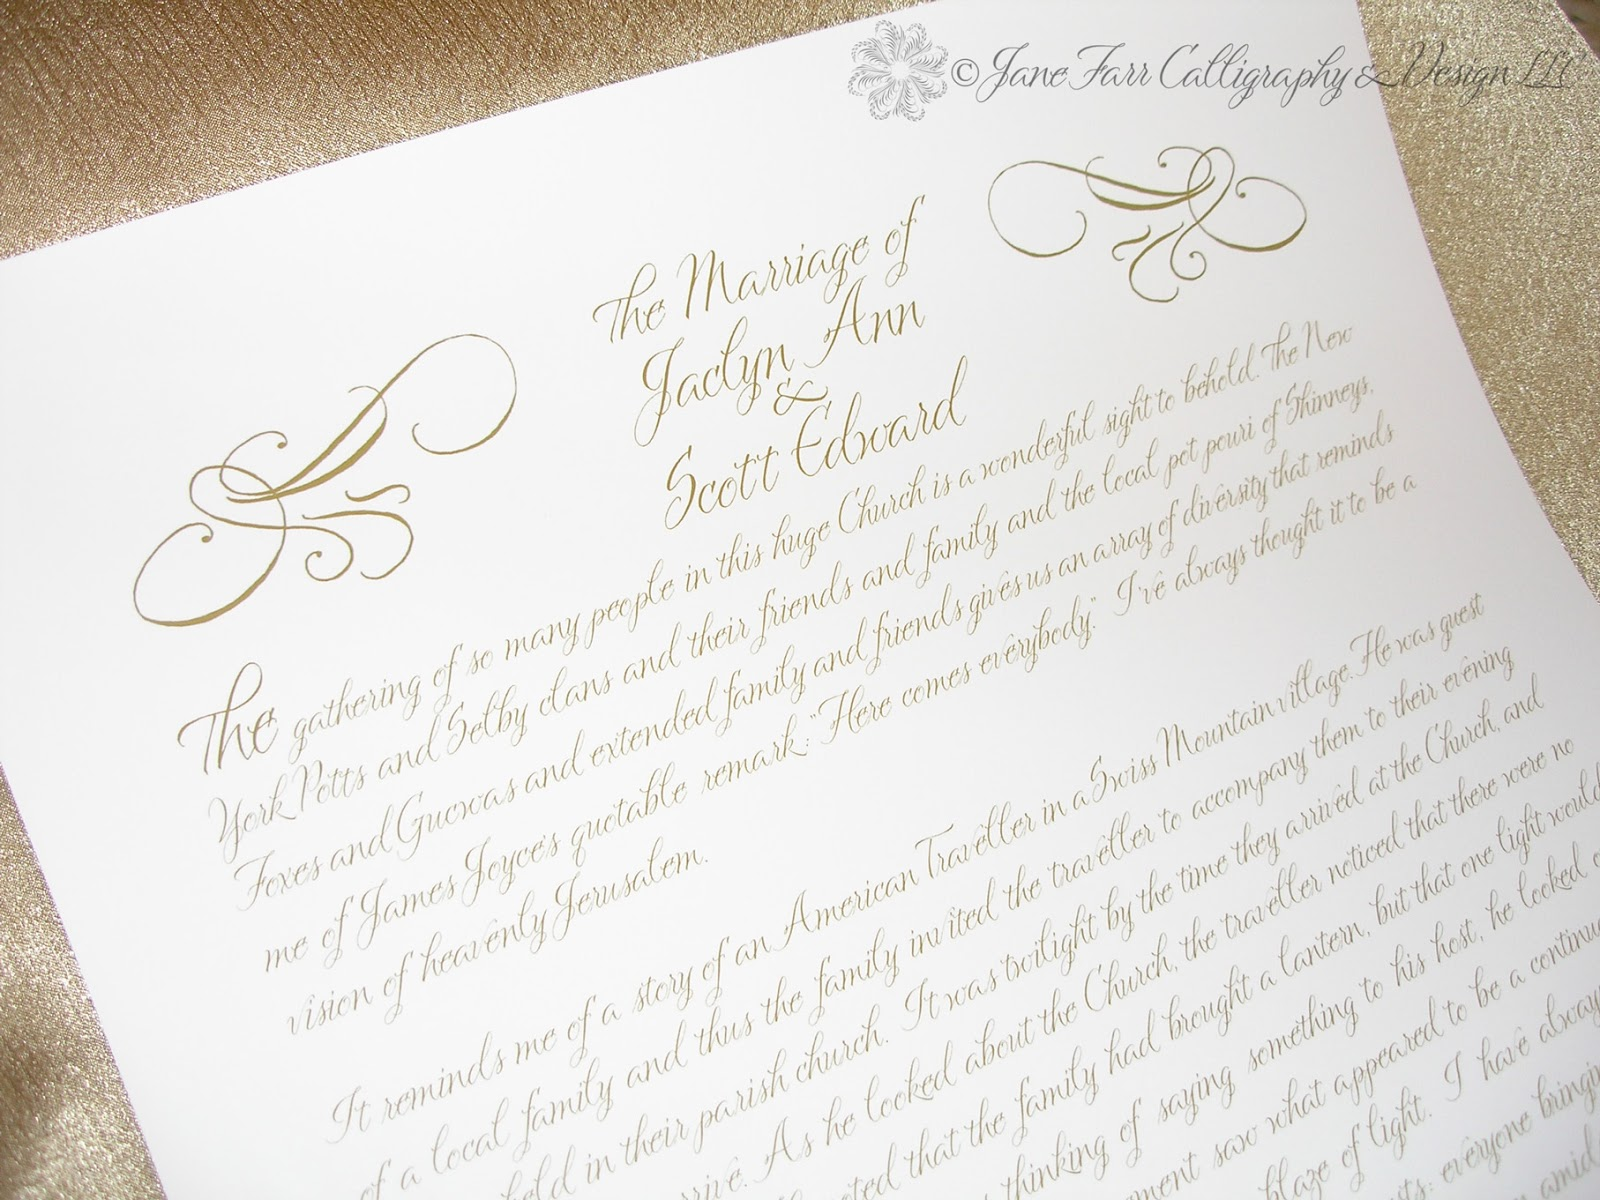 Wedding Calligraphy by Jane Farr First Wedding Anniversary Gift